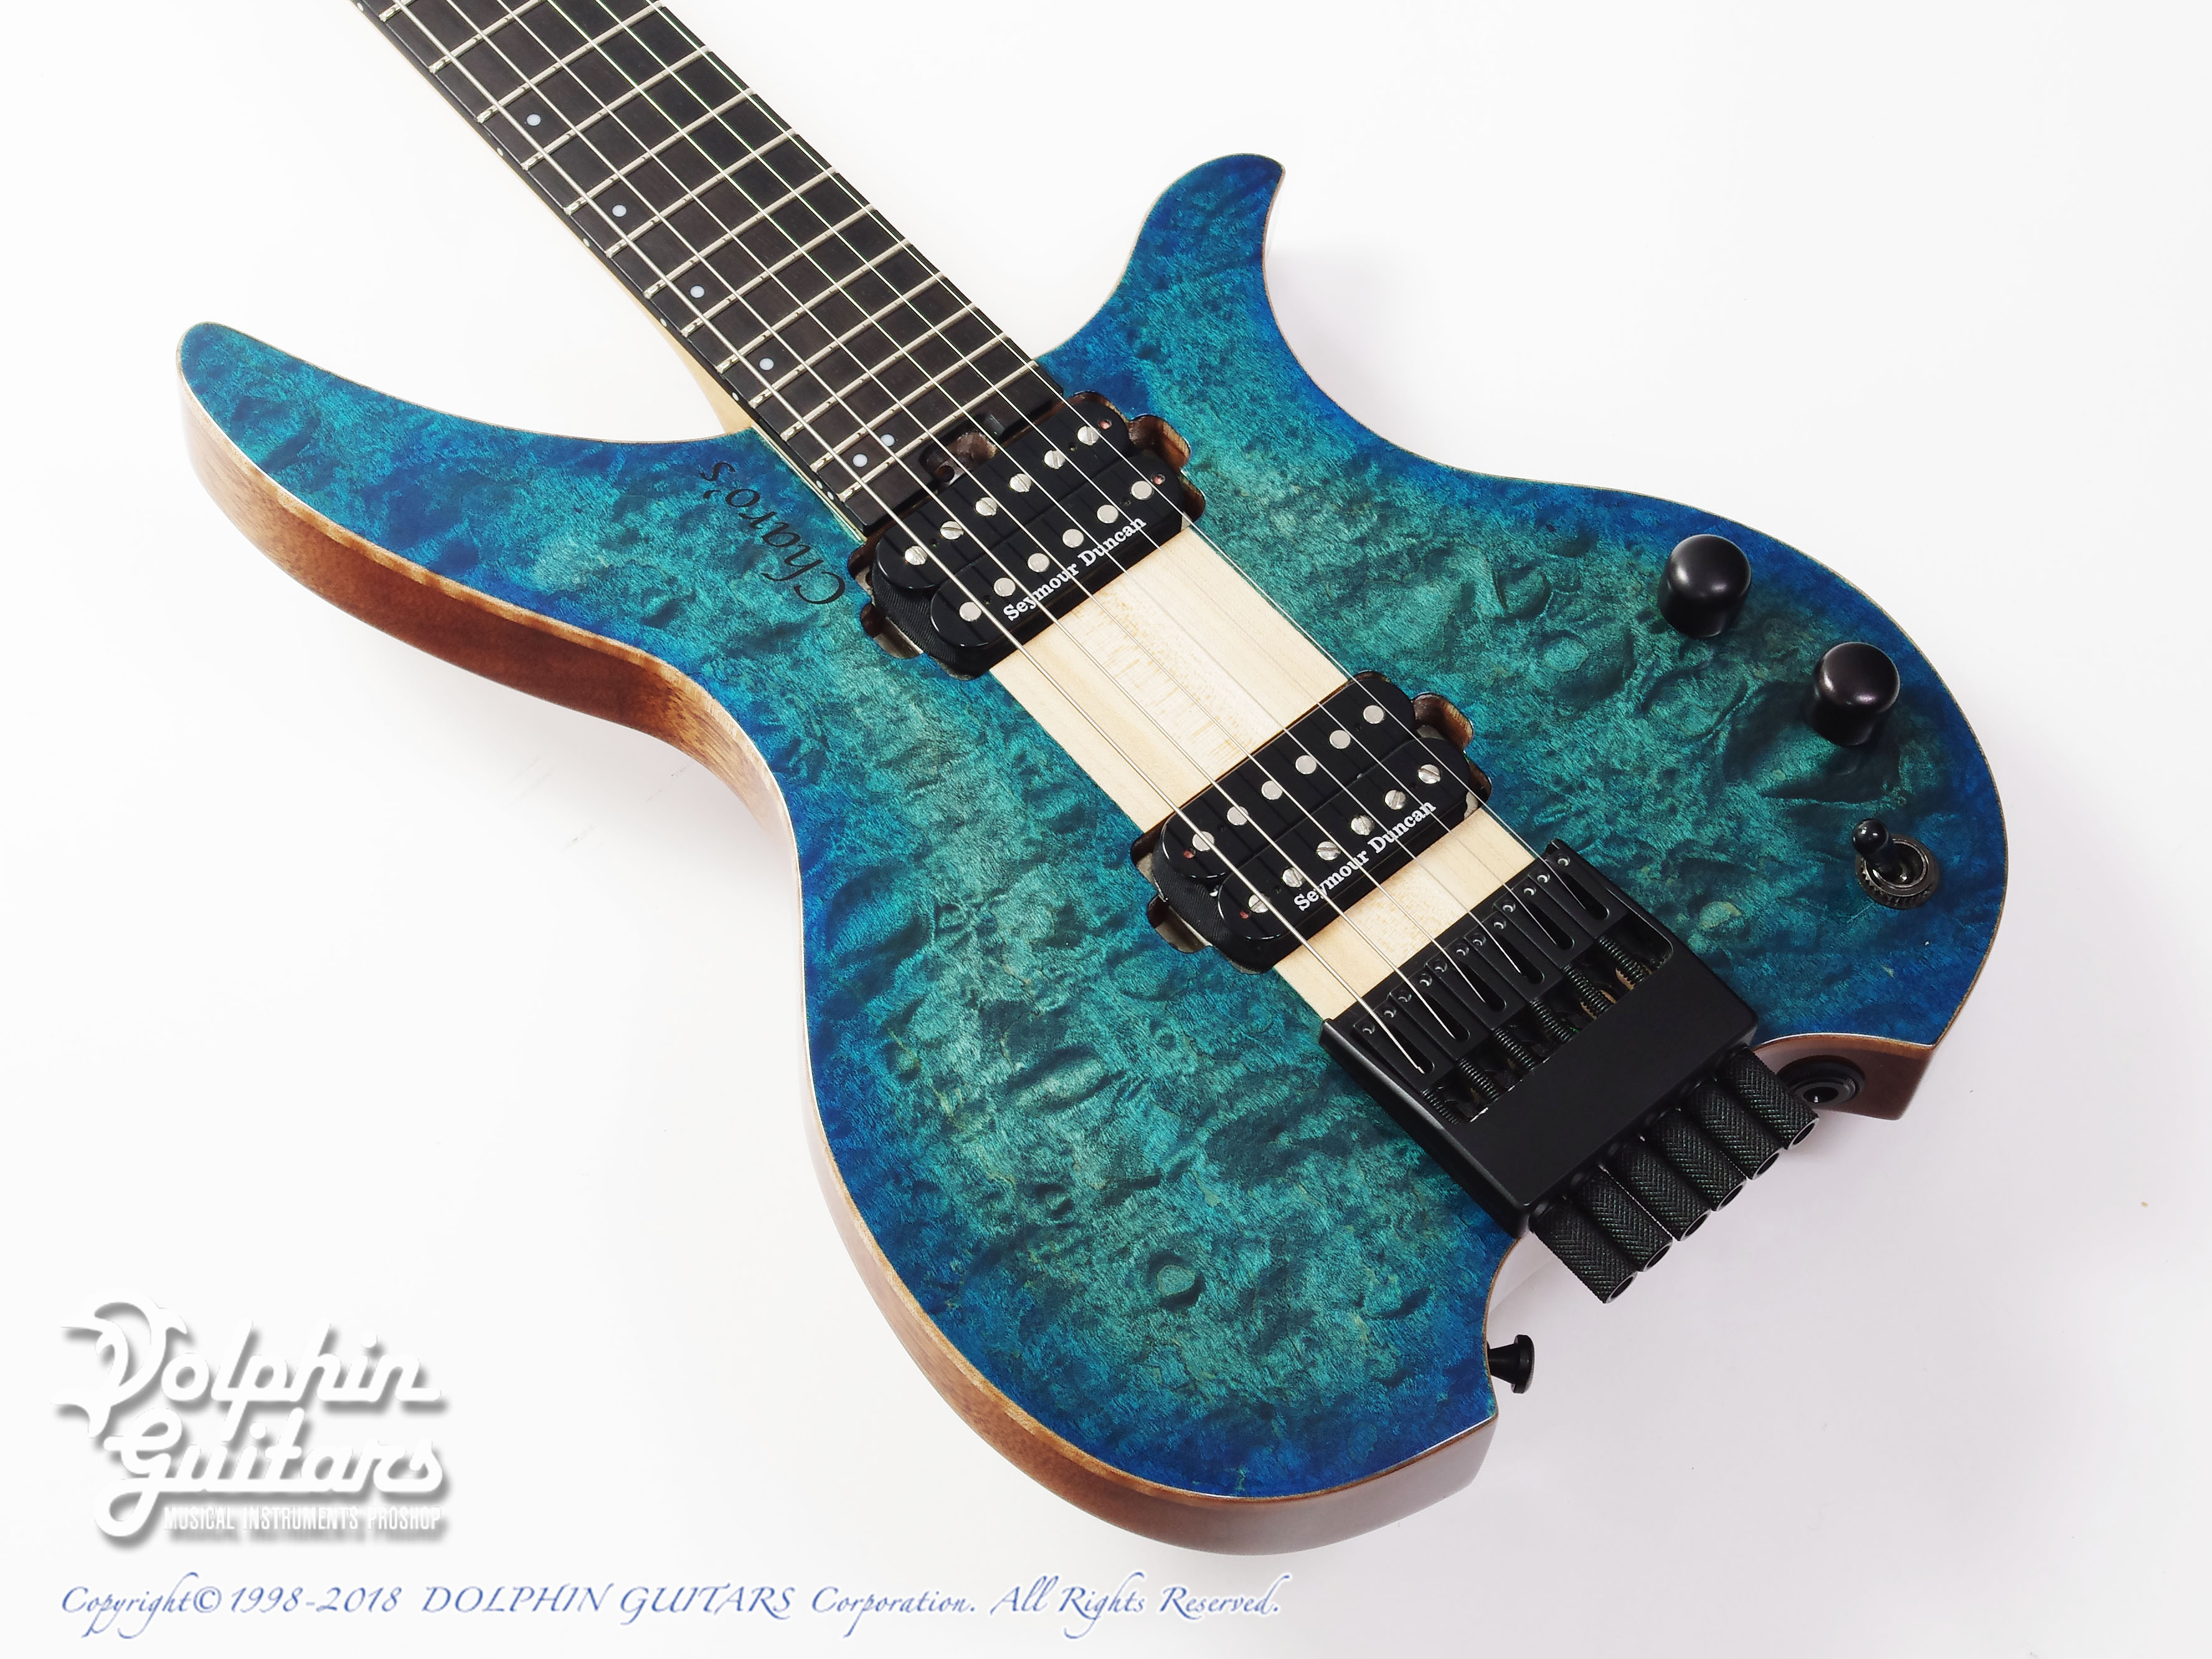 Charo's:CH-G6 Headless Guitar (Quilted Maple)